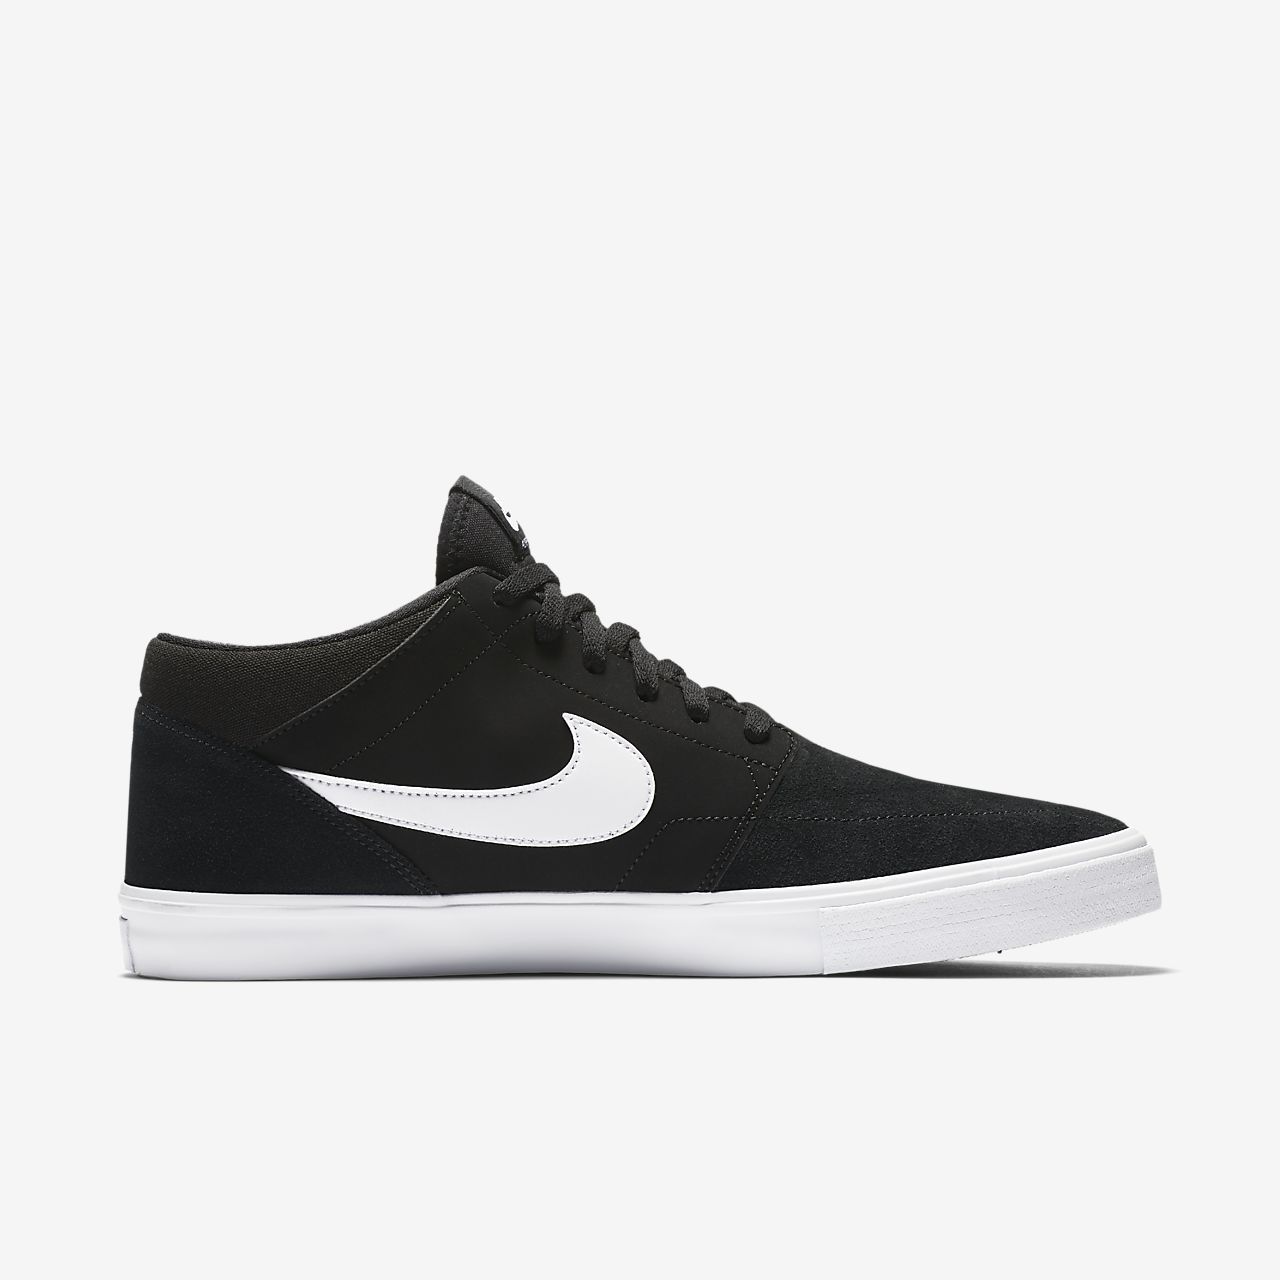 Nike SB Solarsoft Portmore II Mid Men's Skateboarding Shoes Black/White jF9059G